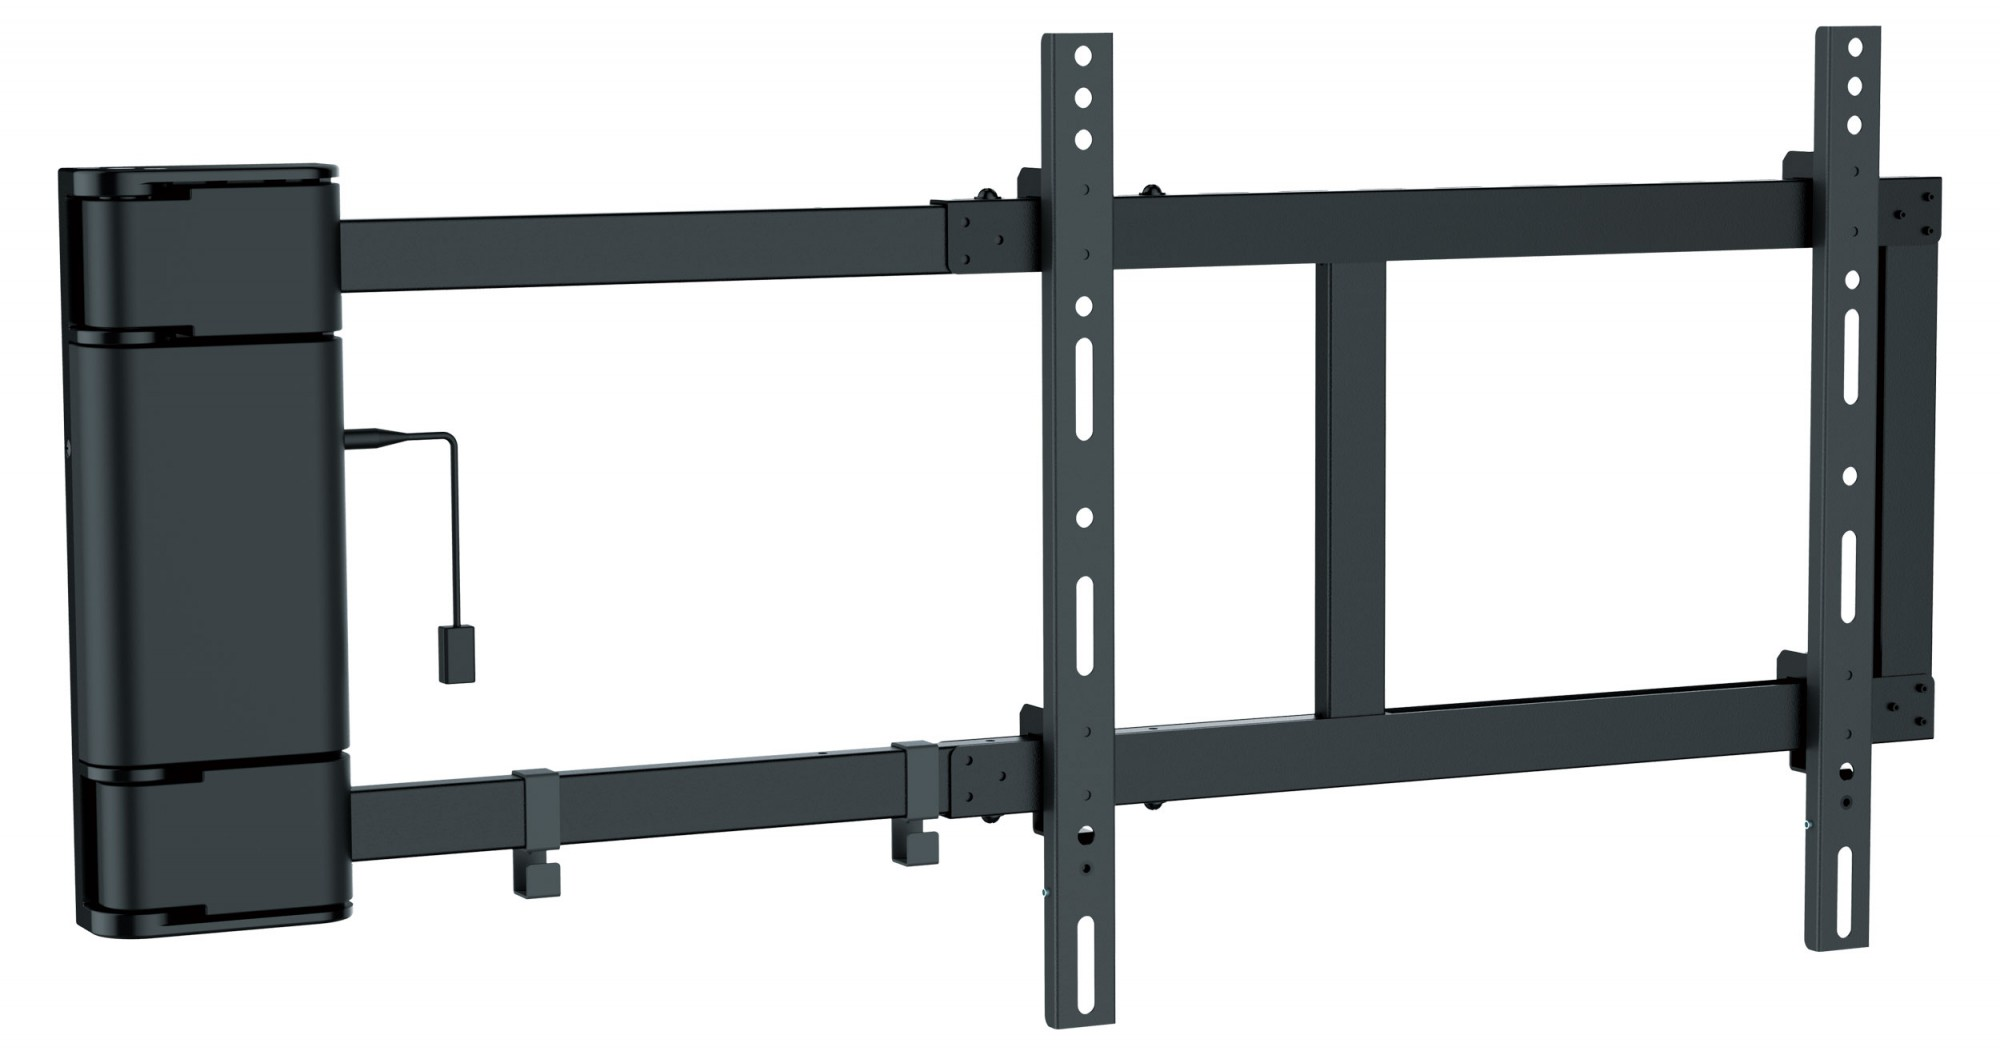 Elektrische tv wandhalterung monitor se2544 10786 - Support tv mural motorise orientable inclinable ...